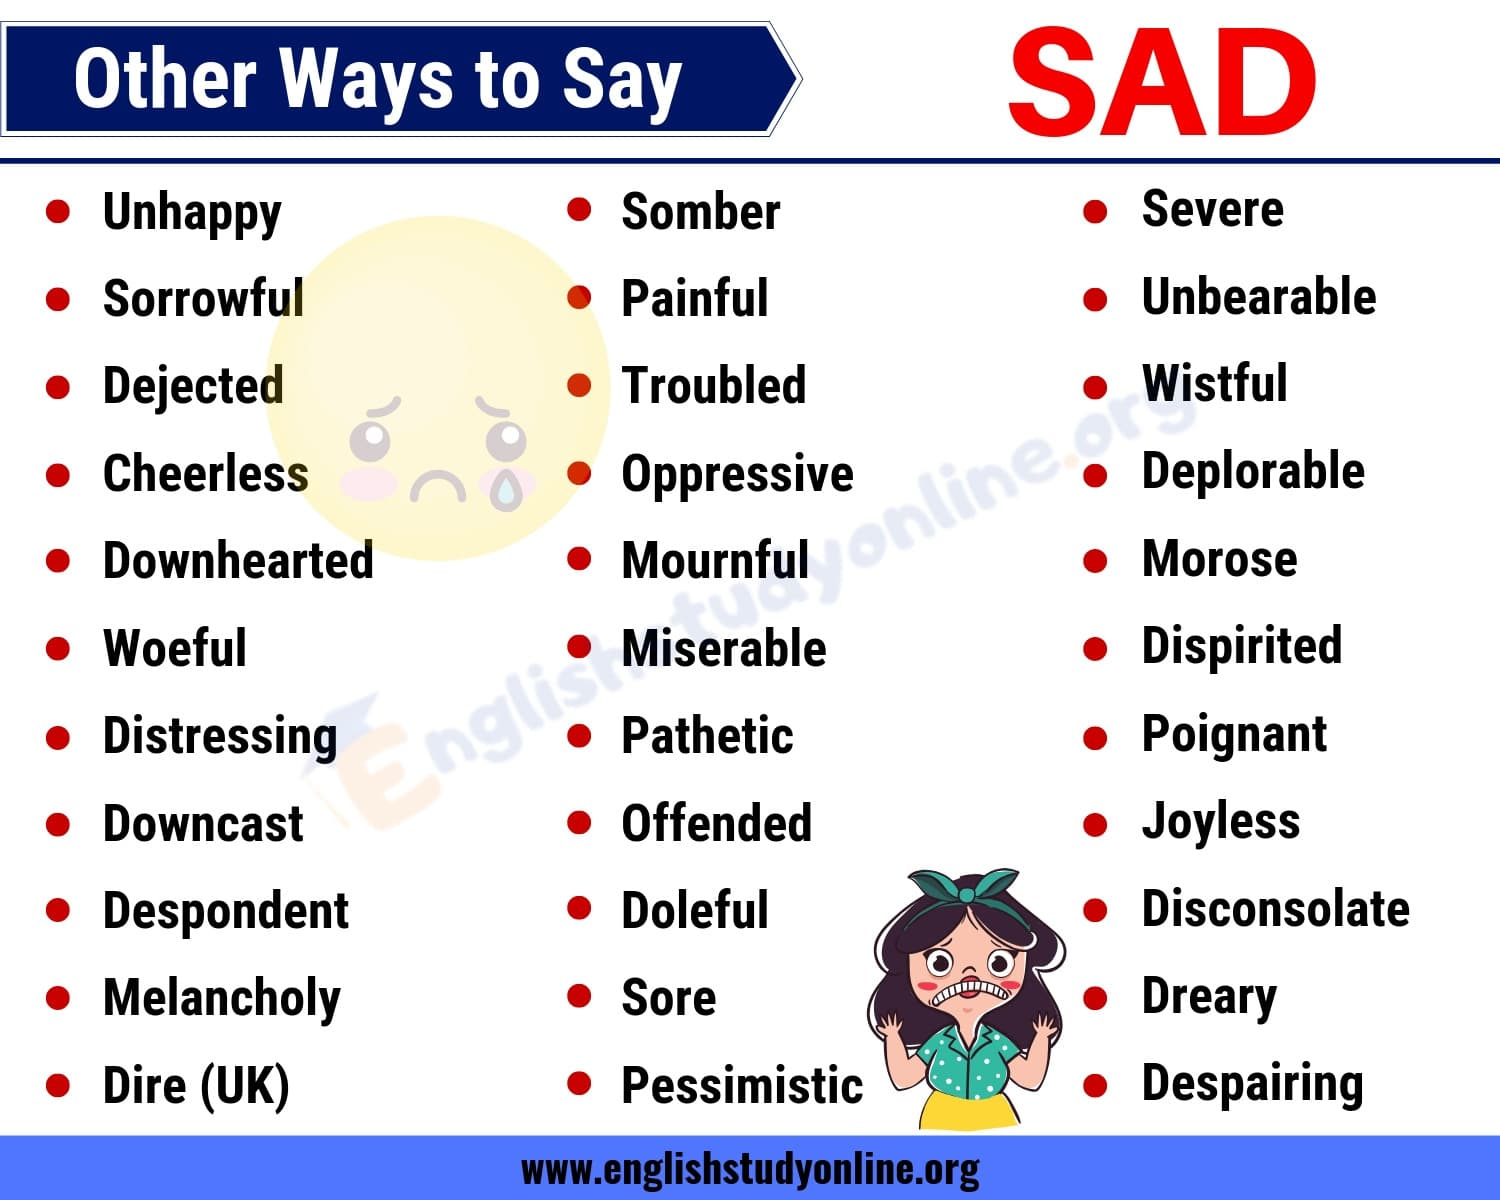 SAD Synonym